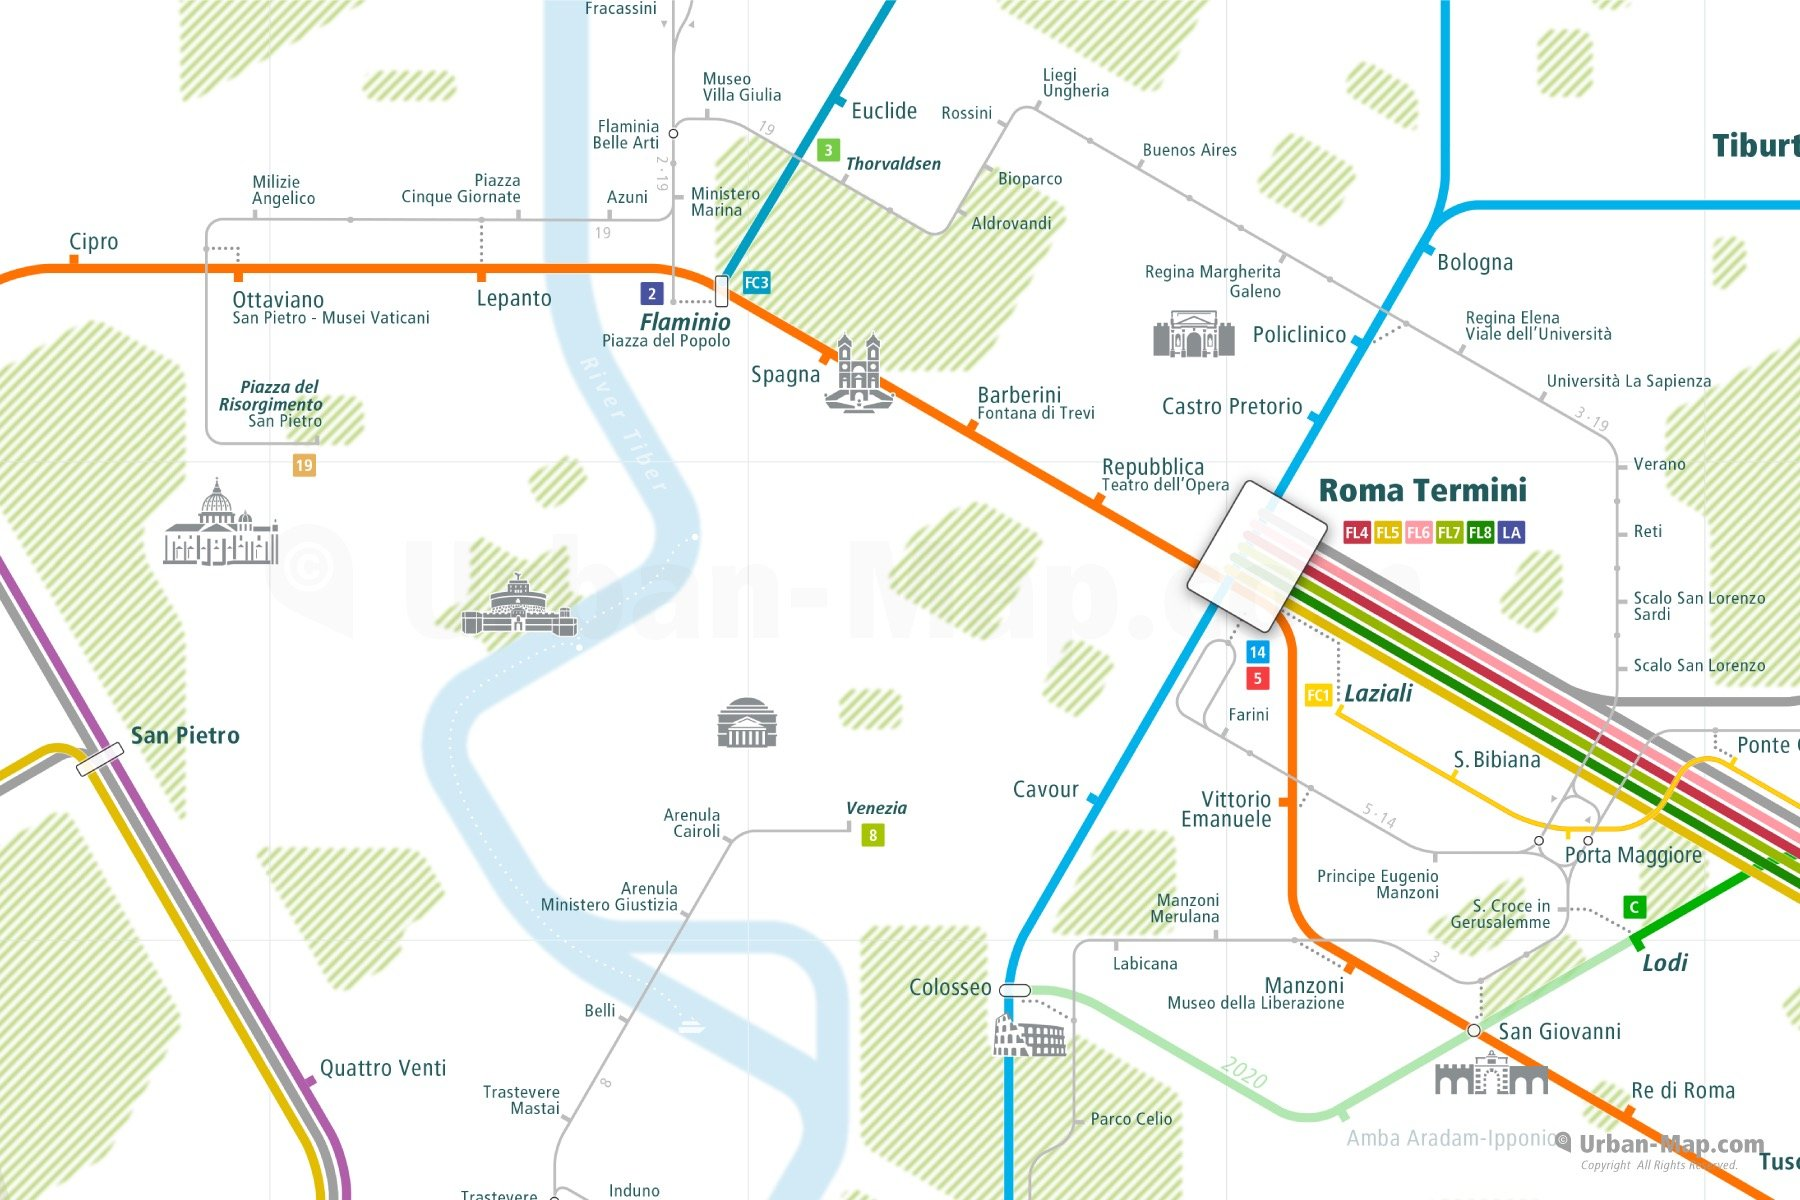 Rome City Rail Map shows the train and public transportation routes of - Close-Up